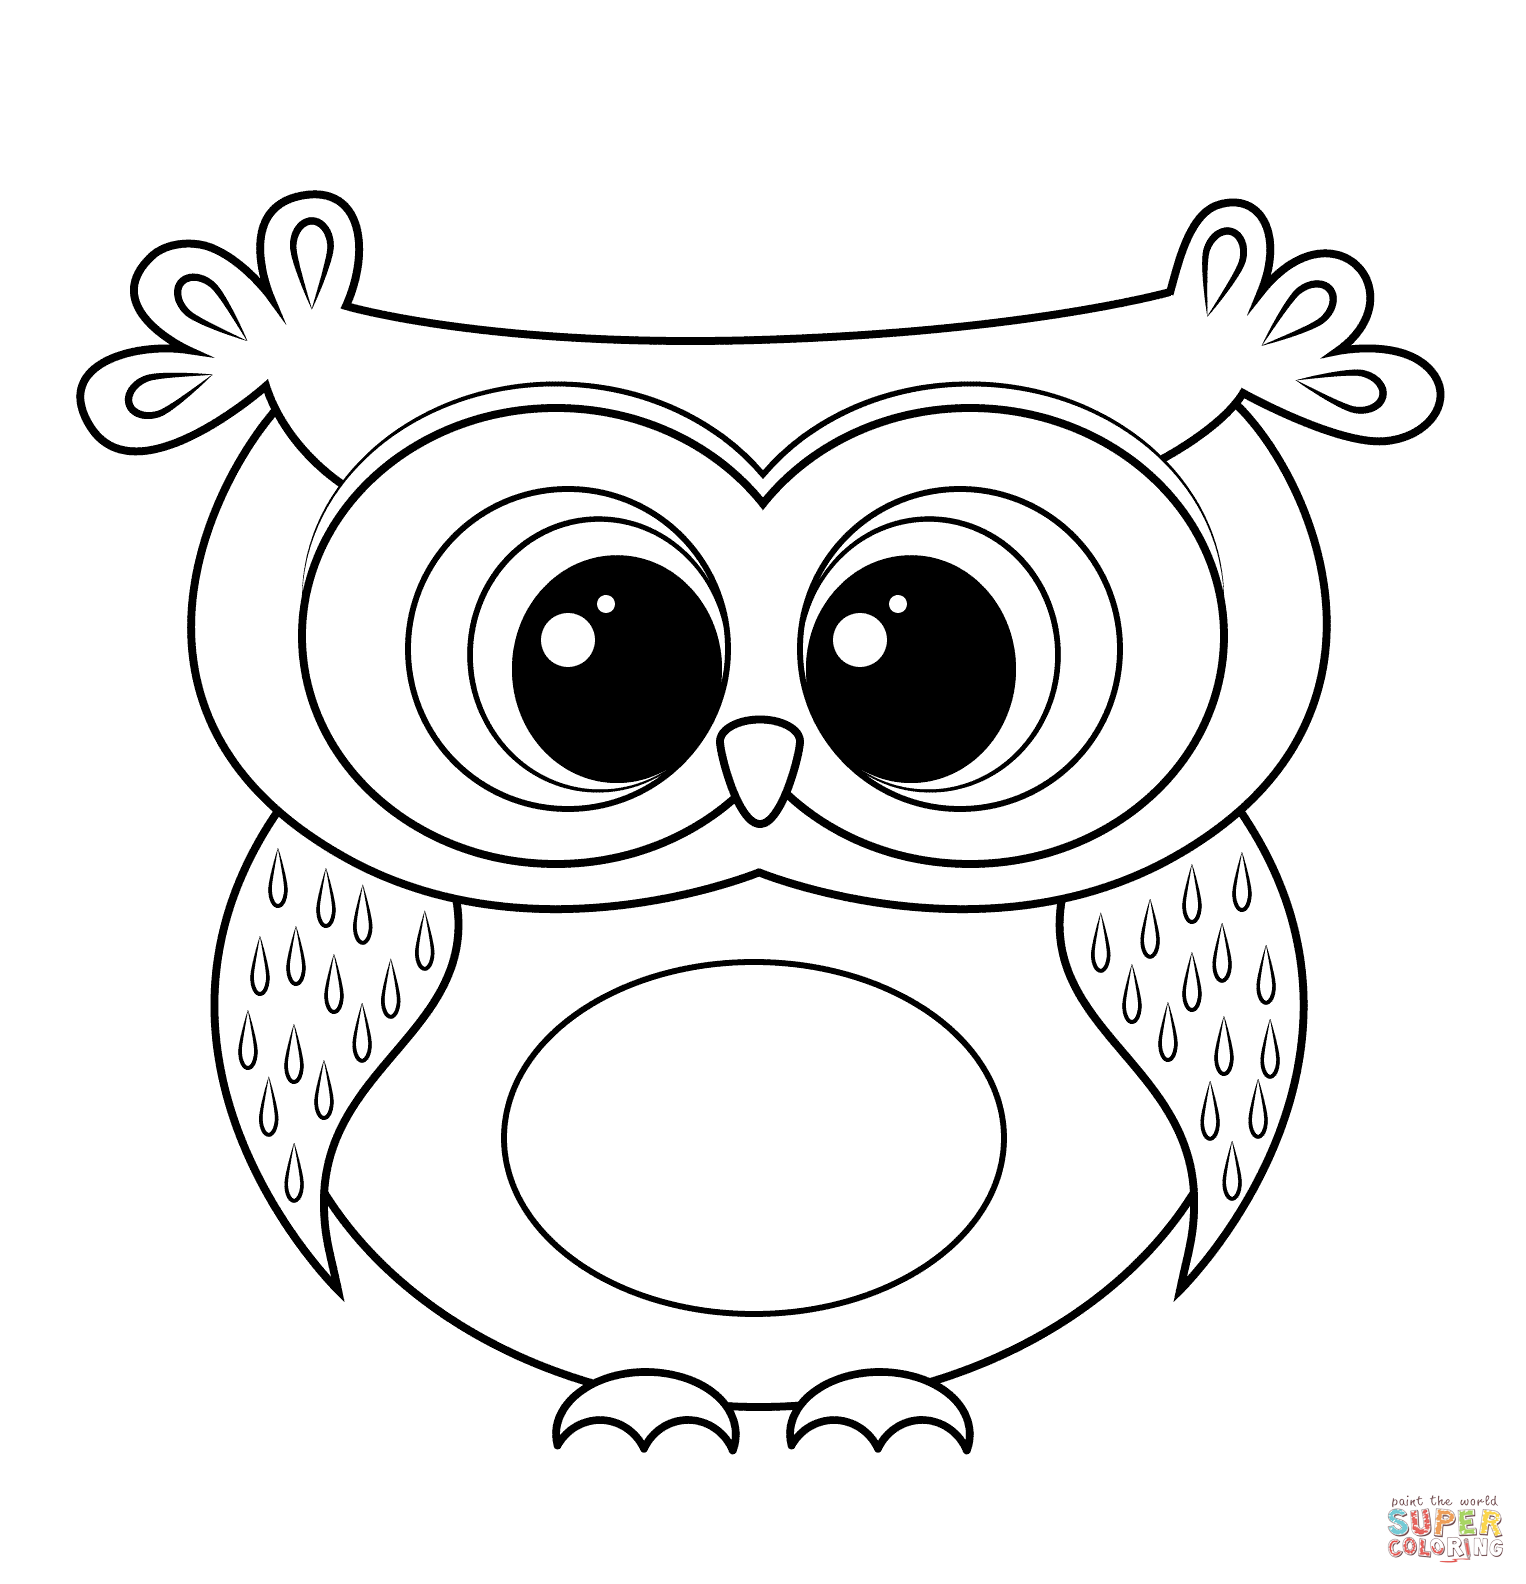 owl coloring sheet cute owl coloring page free printable coloring pages owl coloring sheet